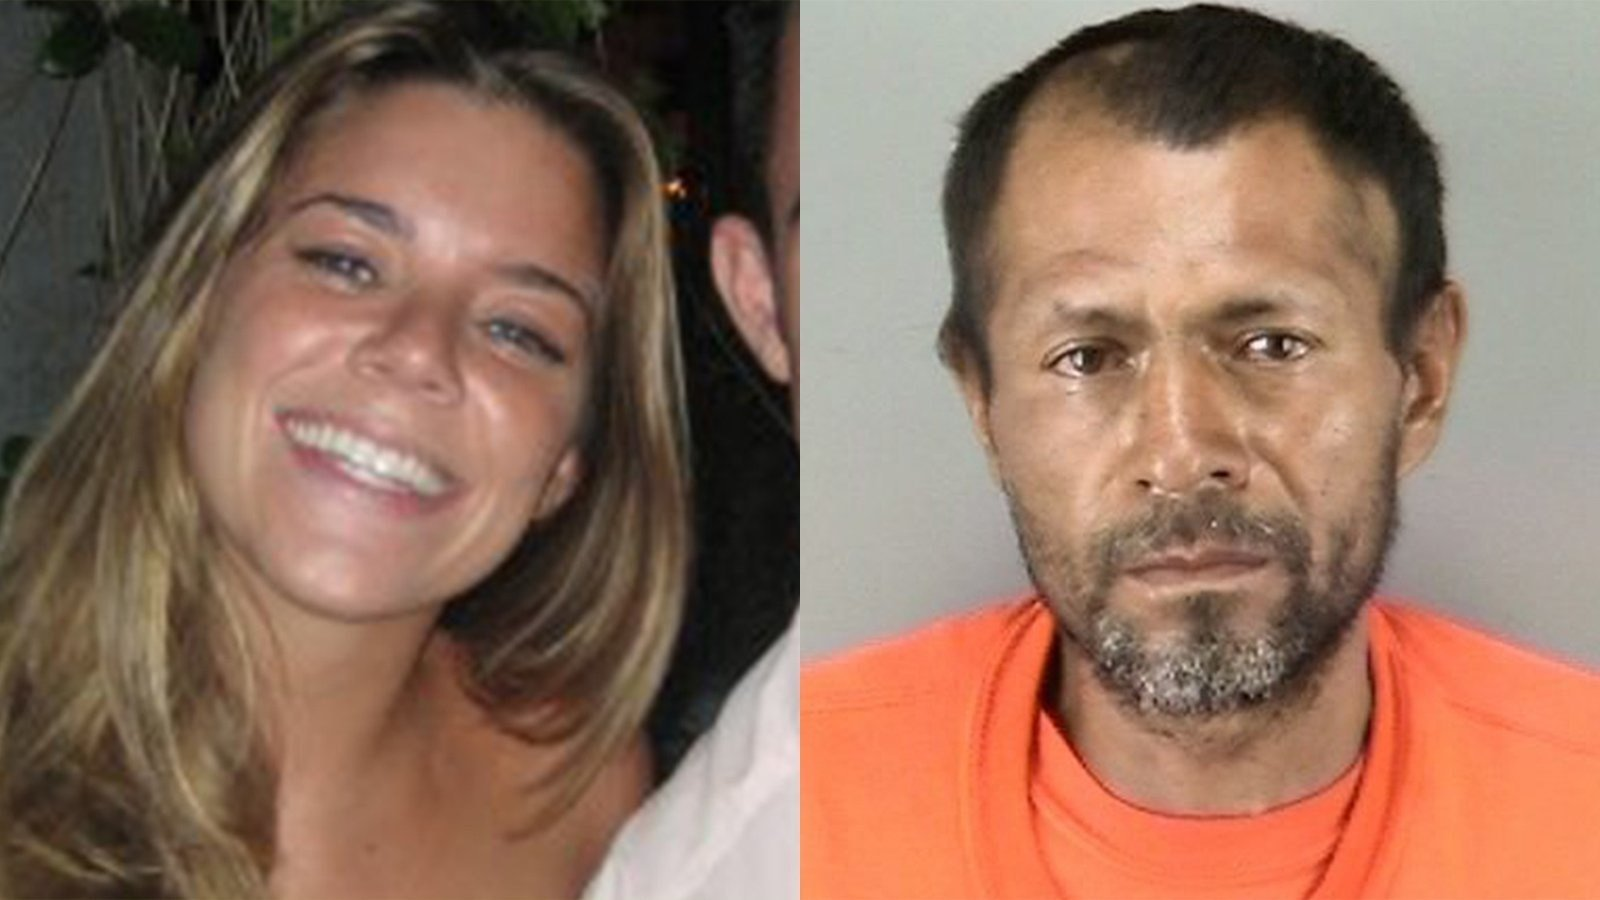 Kate Steinle (left), 32, was killed in July 2015. Jose Ines Garcia Zarate (right) was acquitted December 2017 in the death of Steinle. He was sentenced to three years in prison as he faces two federal gun charges related to the case.